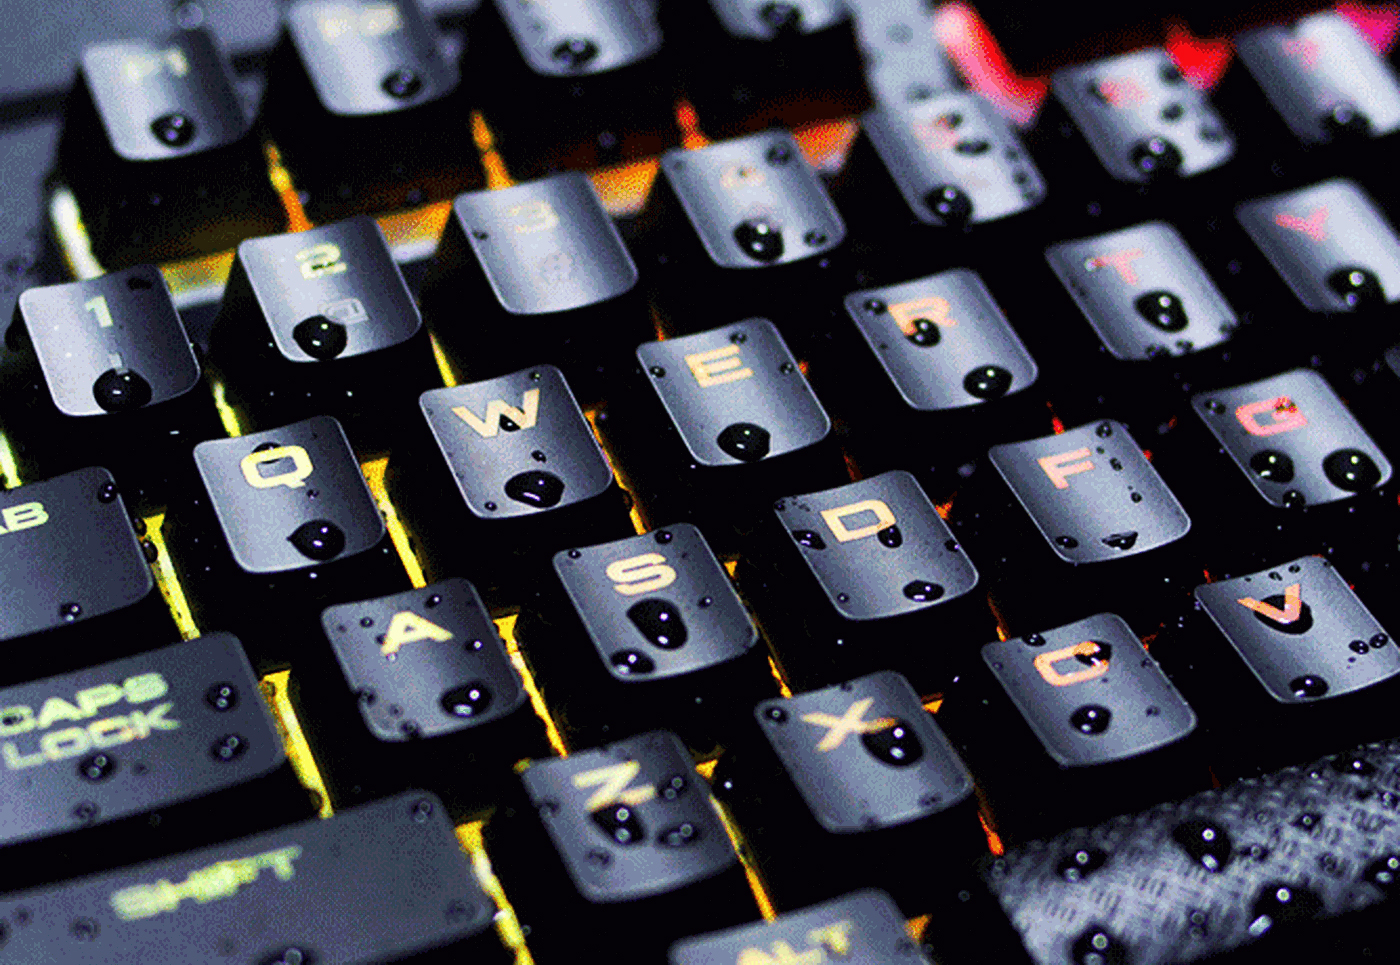 Photo of Corsair K68 RGB Keyboard in Review: Don't Cry for Spilled Milk